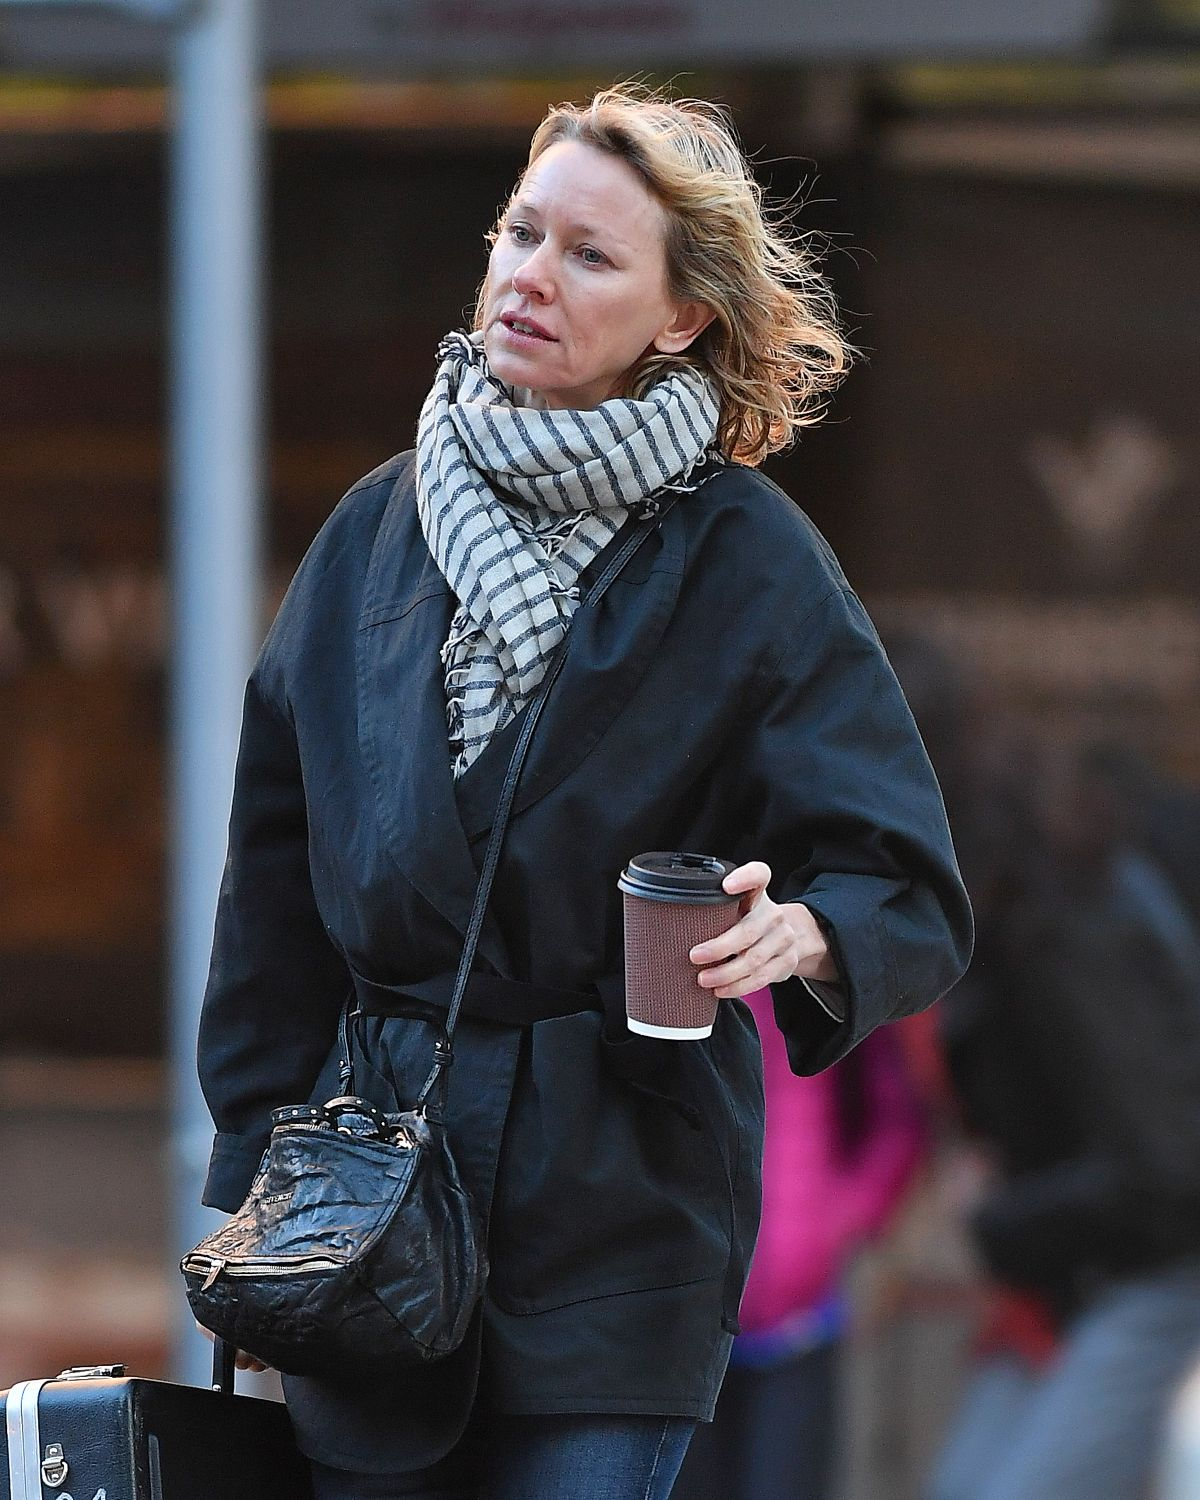 Naomi Watts Spotted taking her children to school in New York City